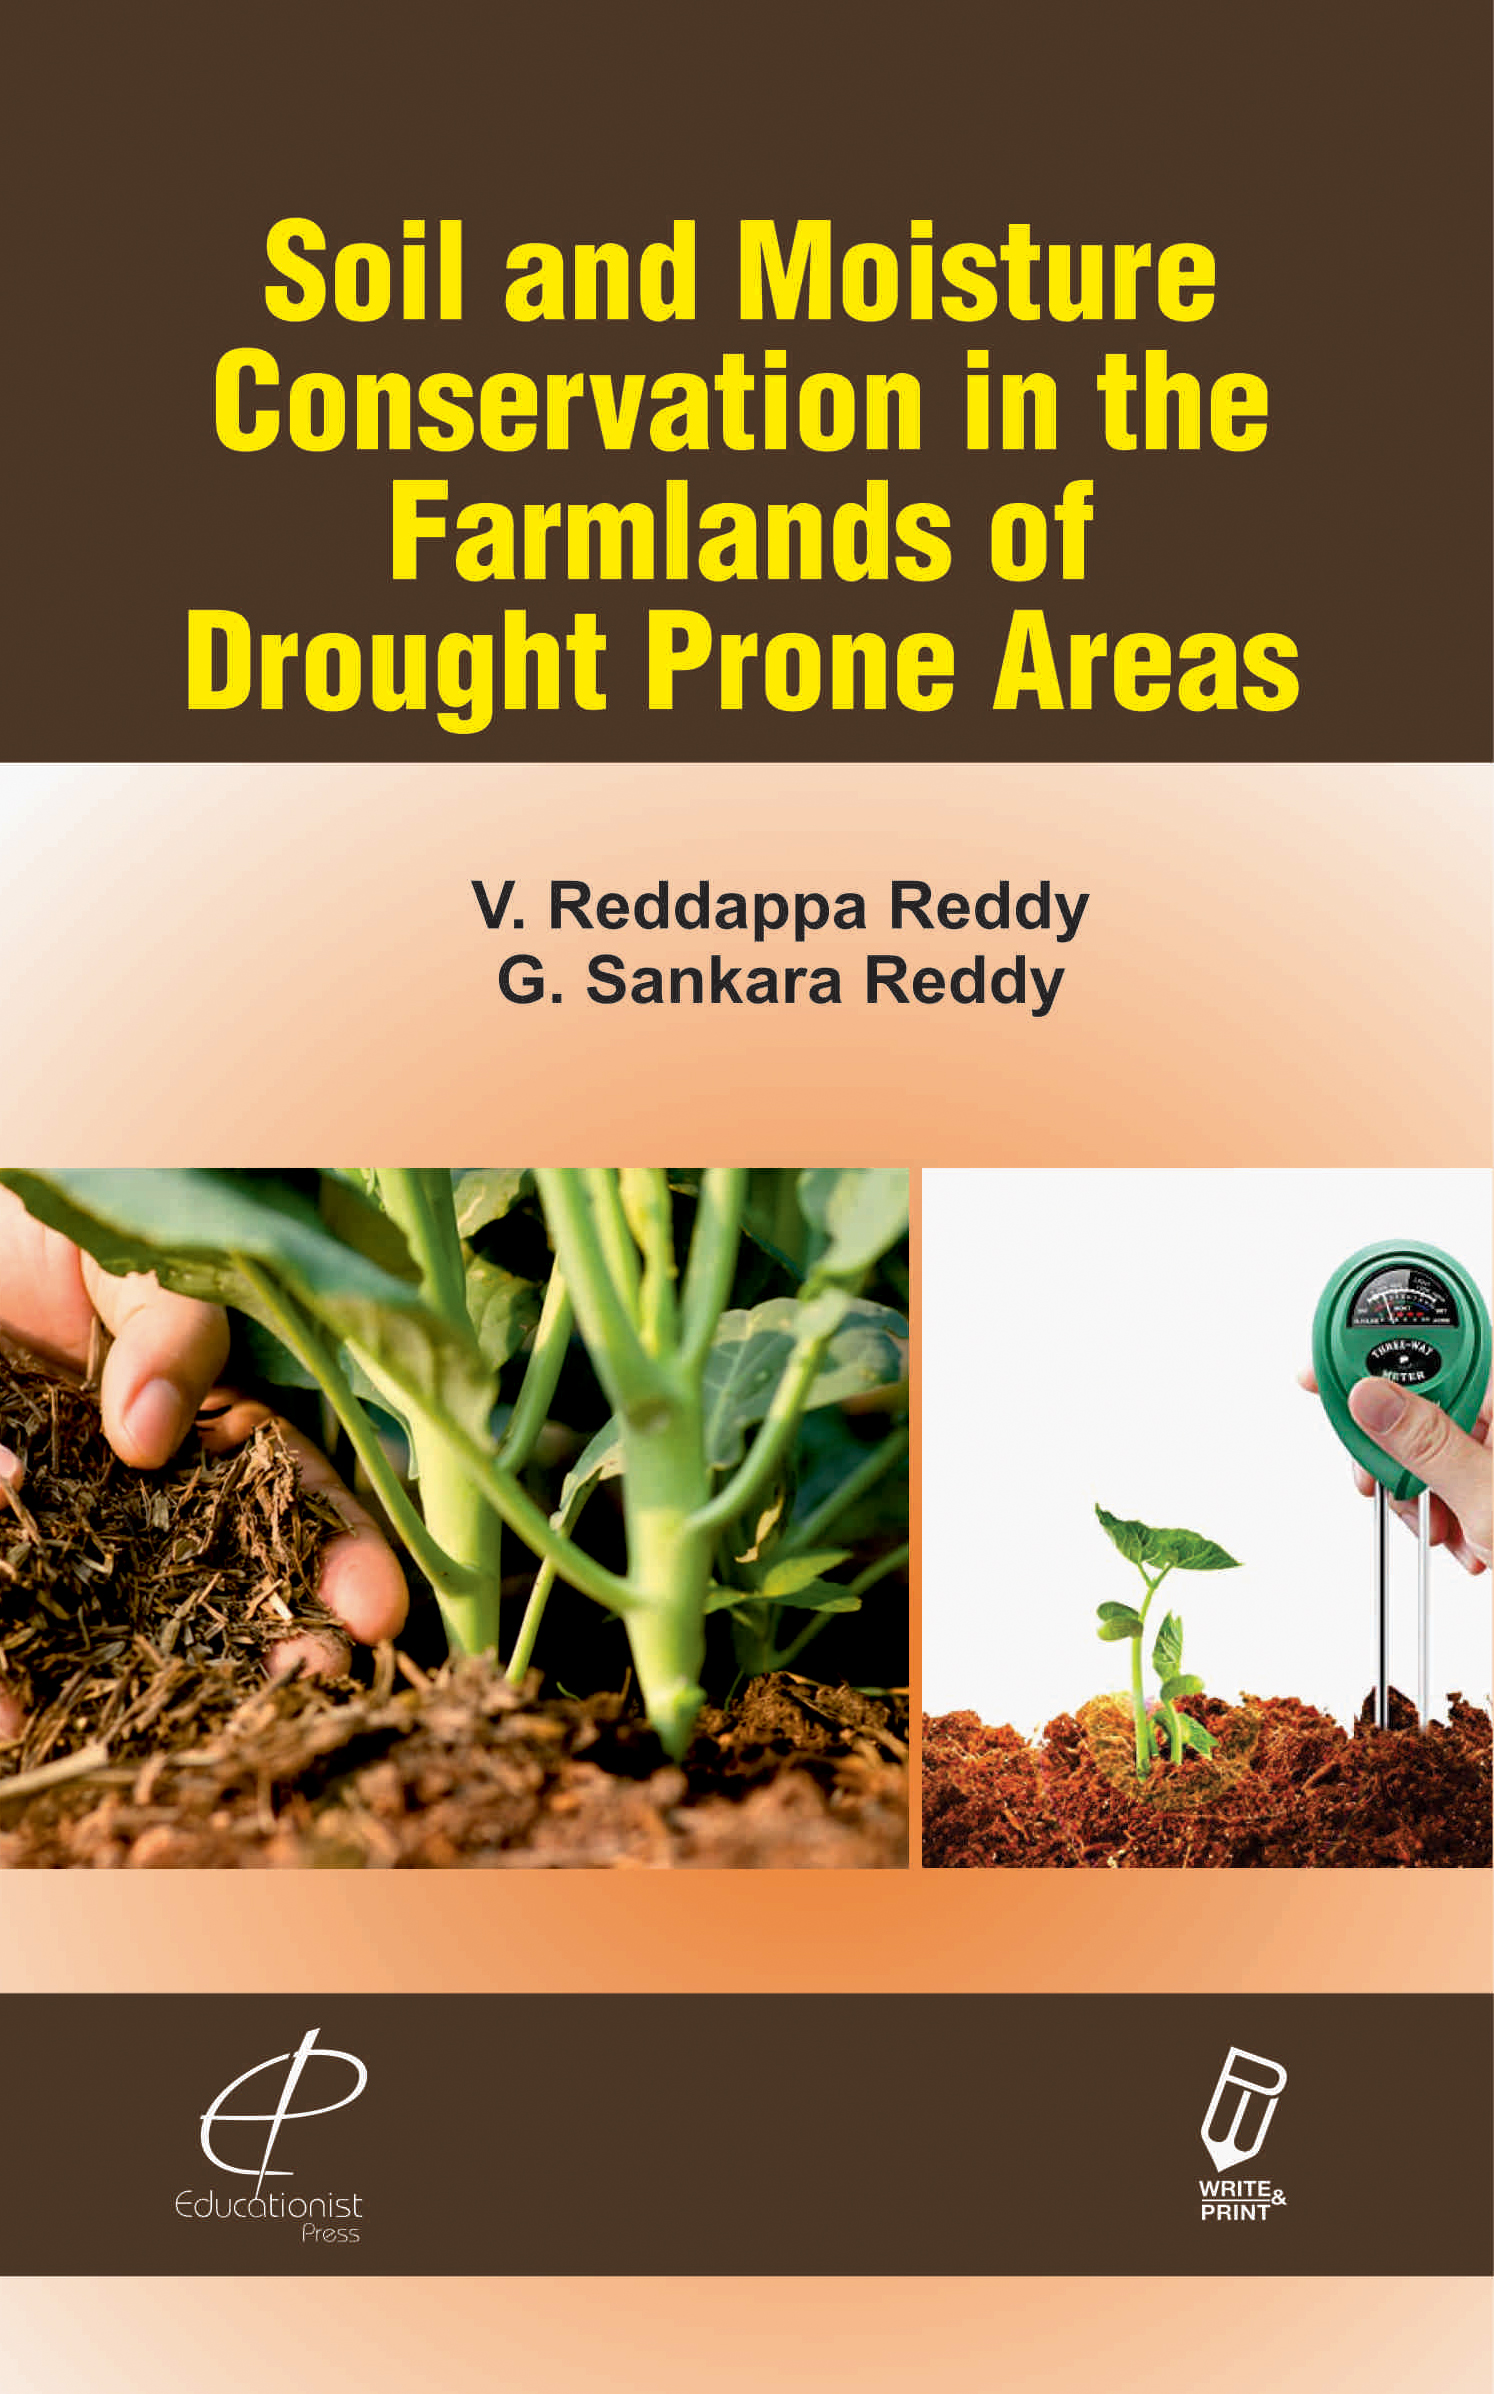 Soil and Moisture Conservation in the Farmlands of Drought Prone Areas